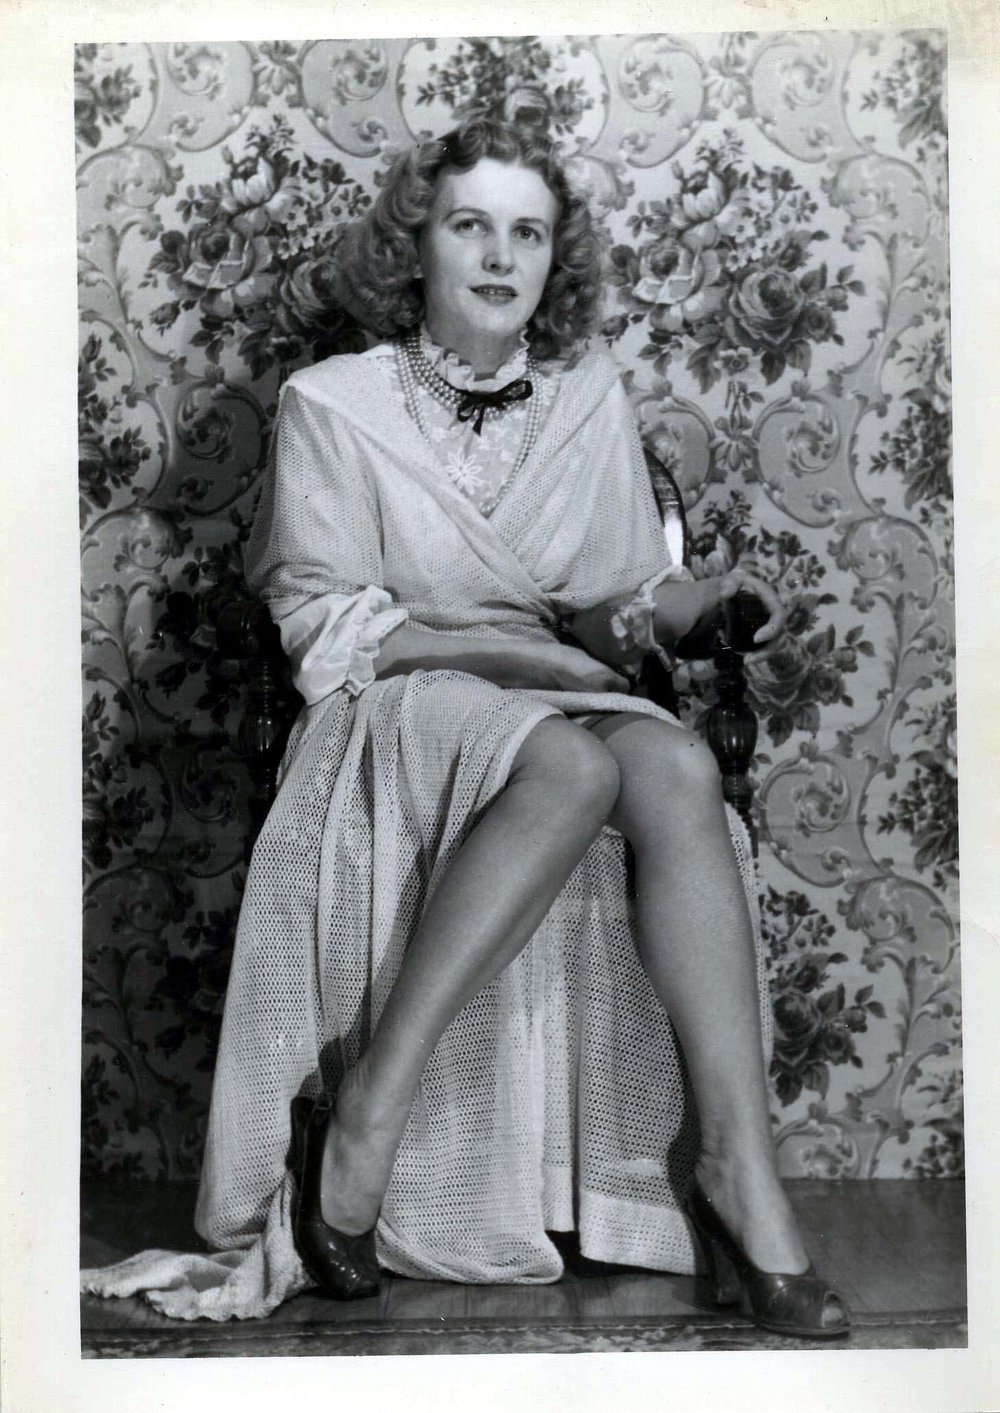 Eugene Von Bruenchenhein (American, 1910-1983).  Untitled (Marie seated, looks to viewer) , n.d. Gelatin silver print, 7 x 5 in. Intuit: The Center for Intuitive and Outsider Art, gift of Lewis and Jean Greenblatt,  2005.4.22